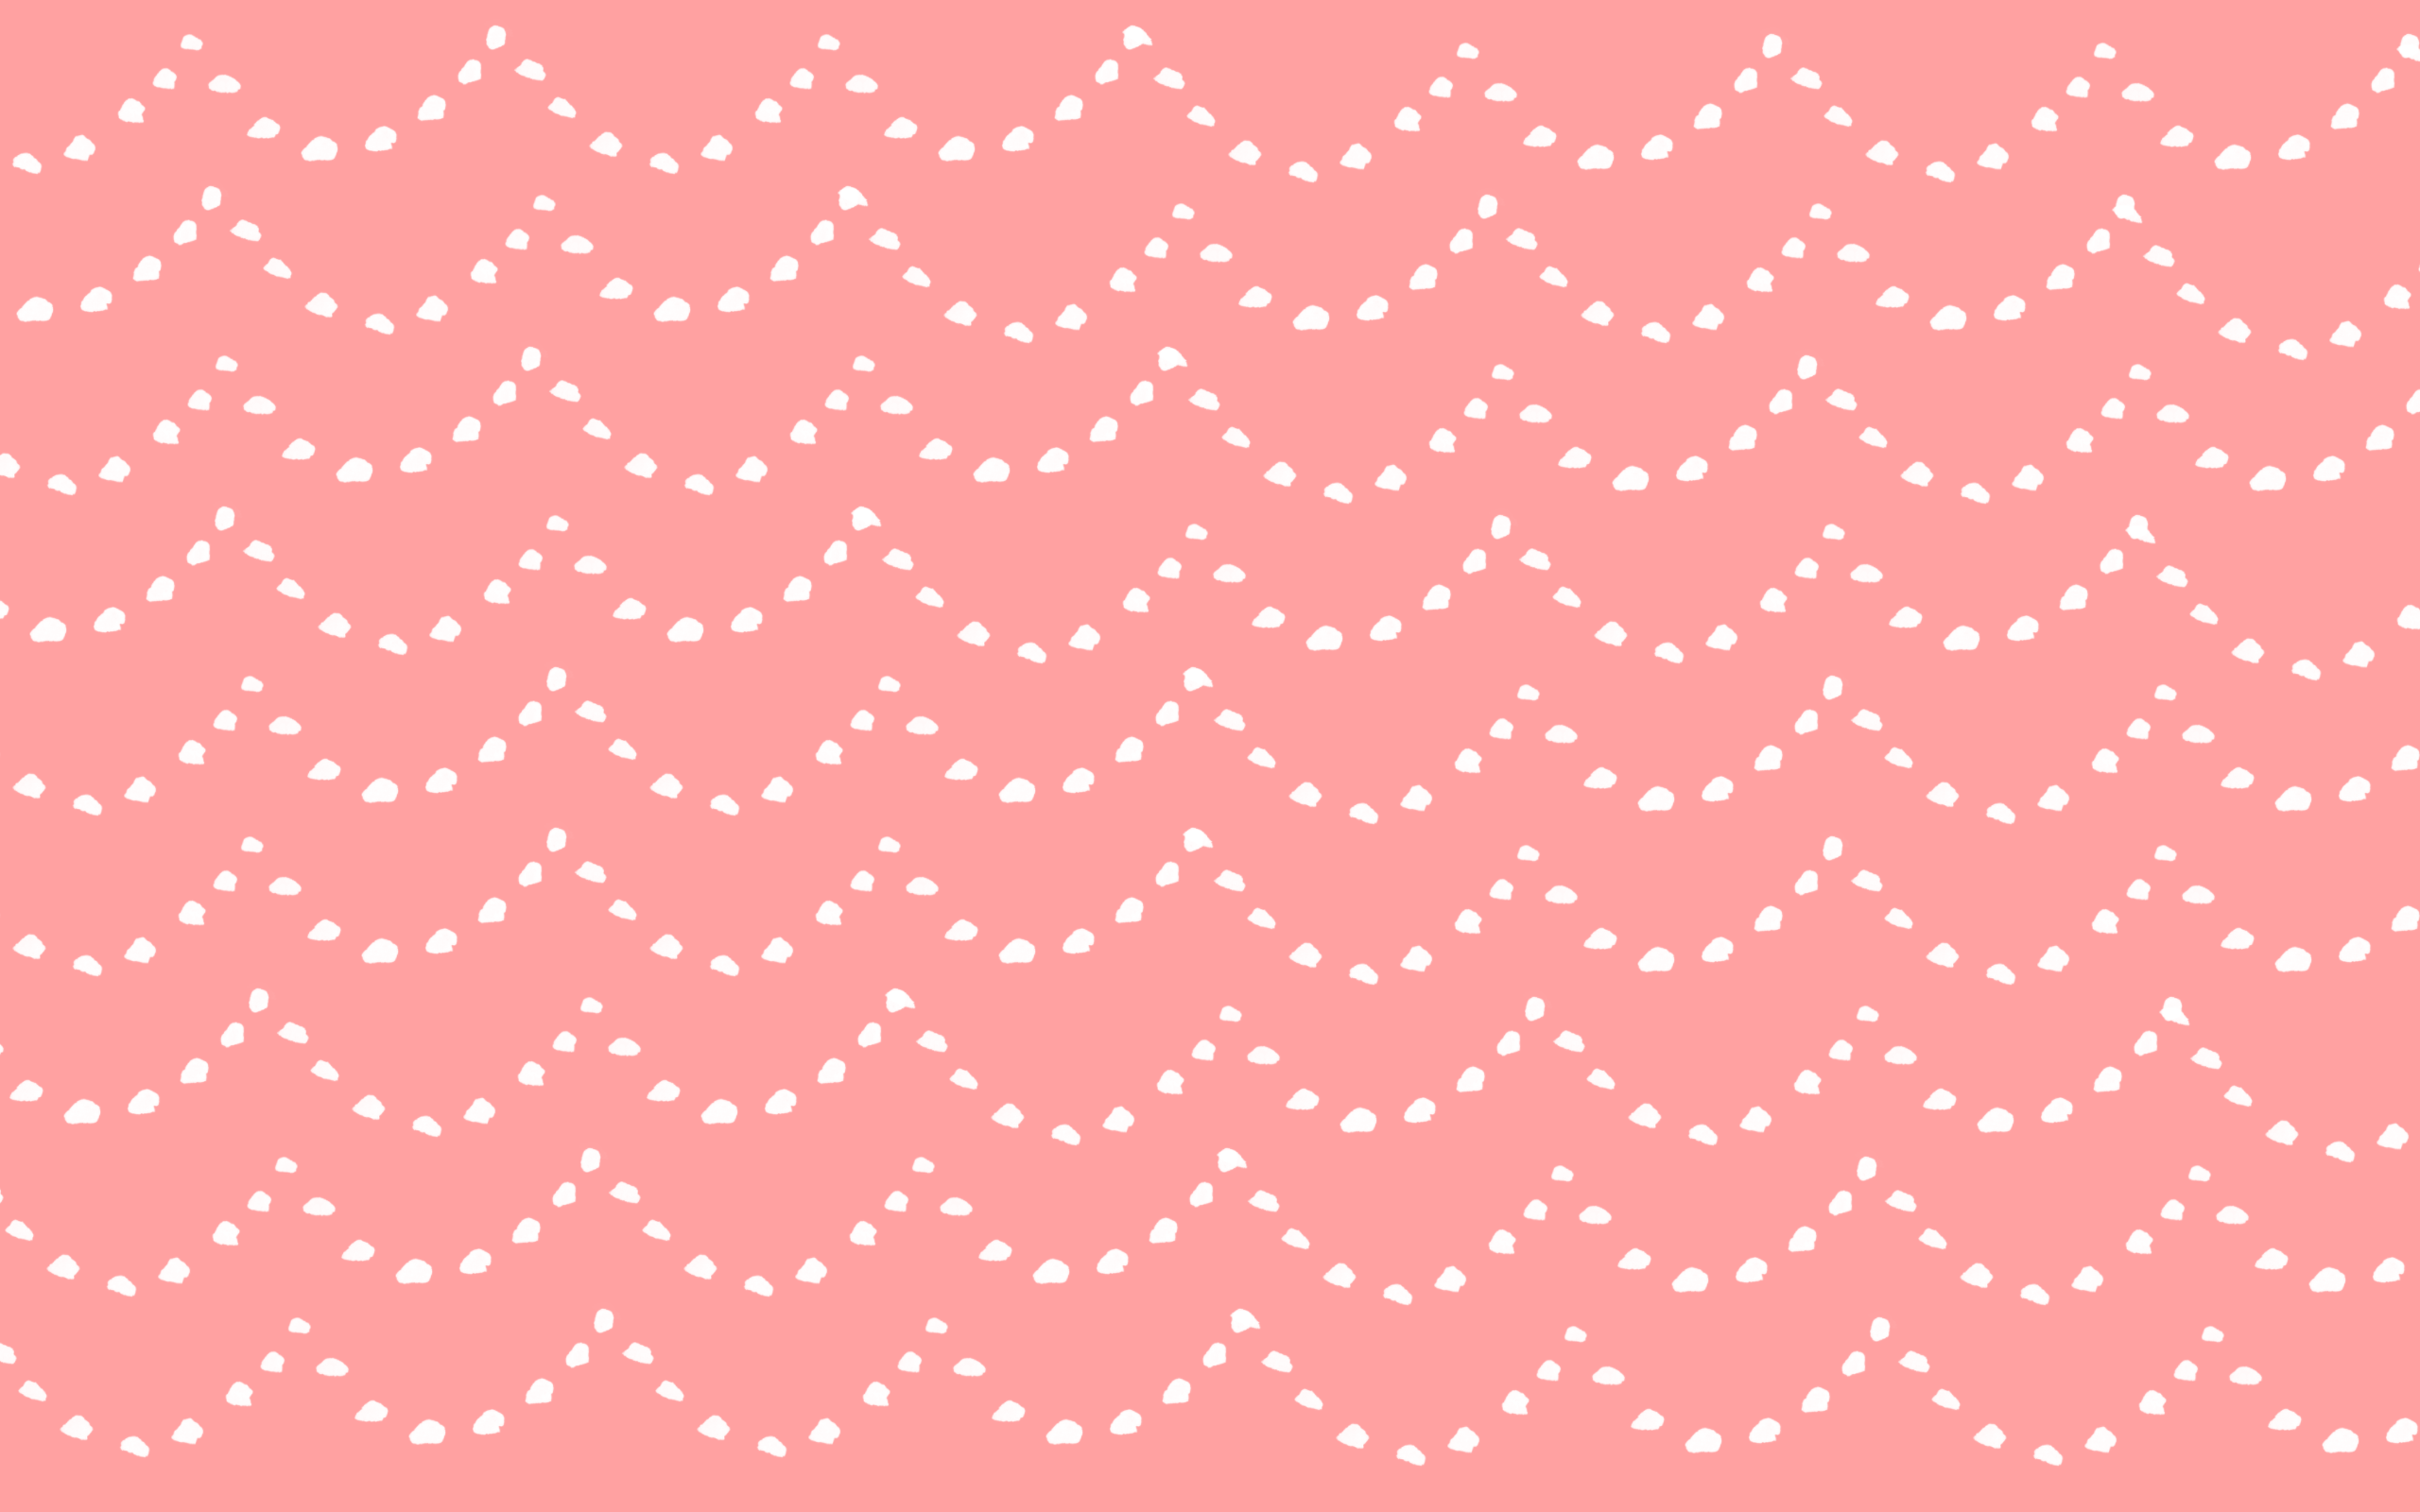 Good Wallpaper Marble Mac - Coral-Dots-Macbook  2018_845994.png?3574183561602082712